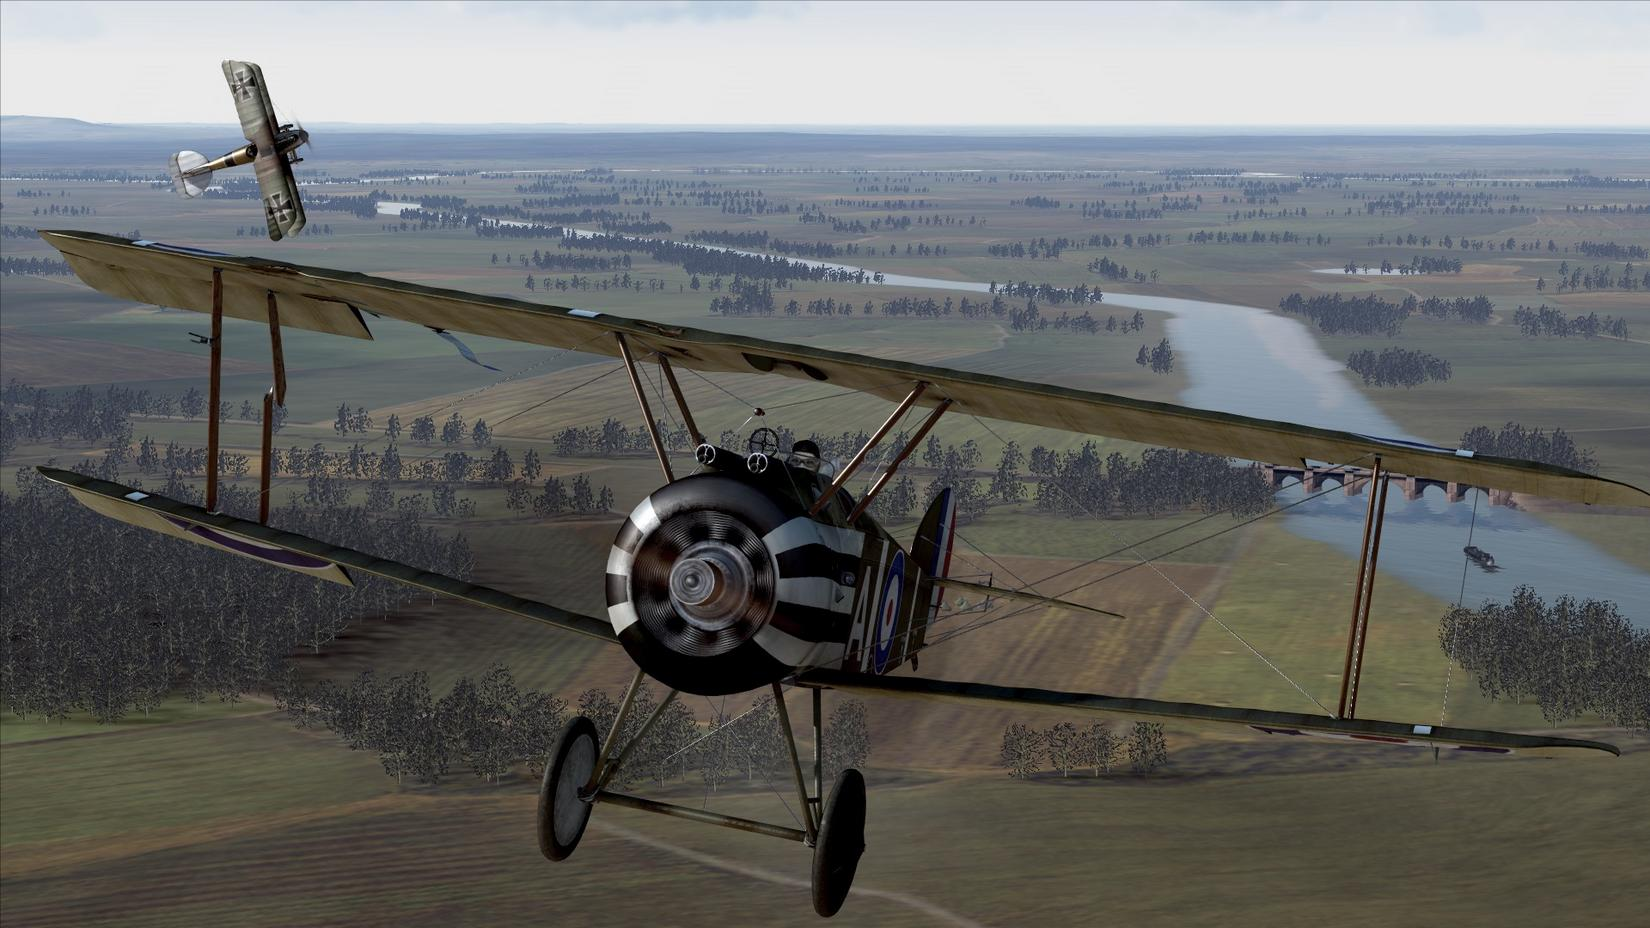 The First Aerial Combat Victory